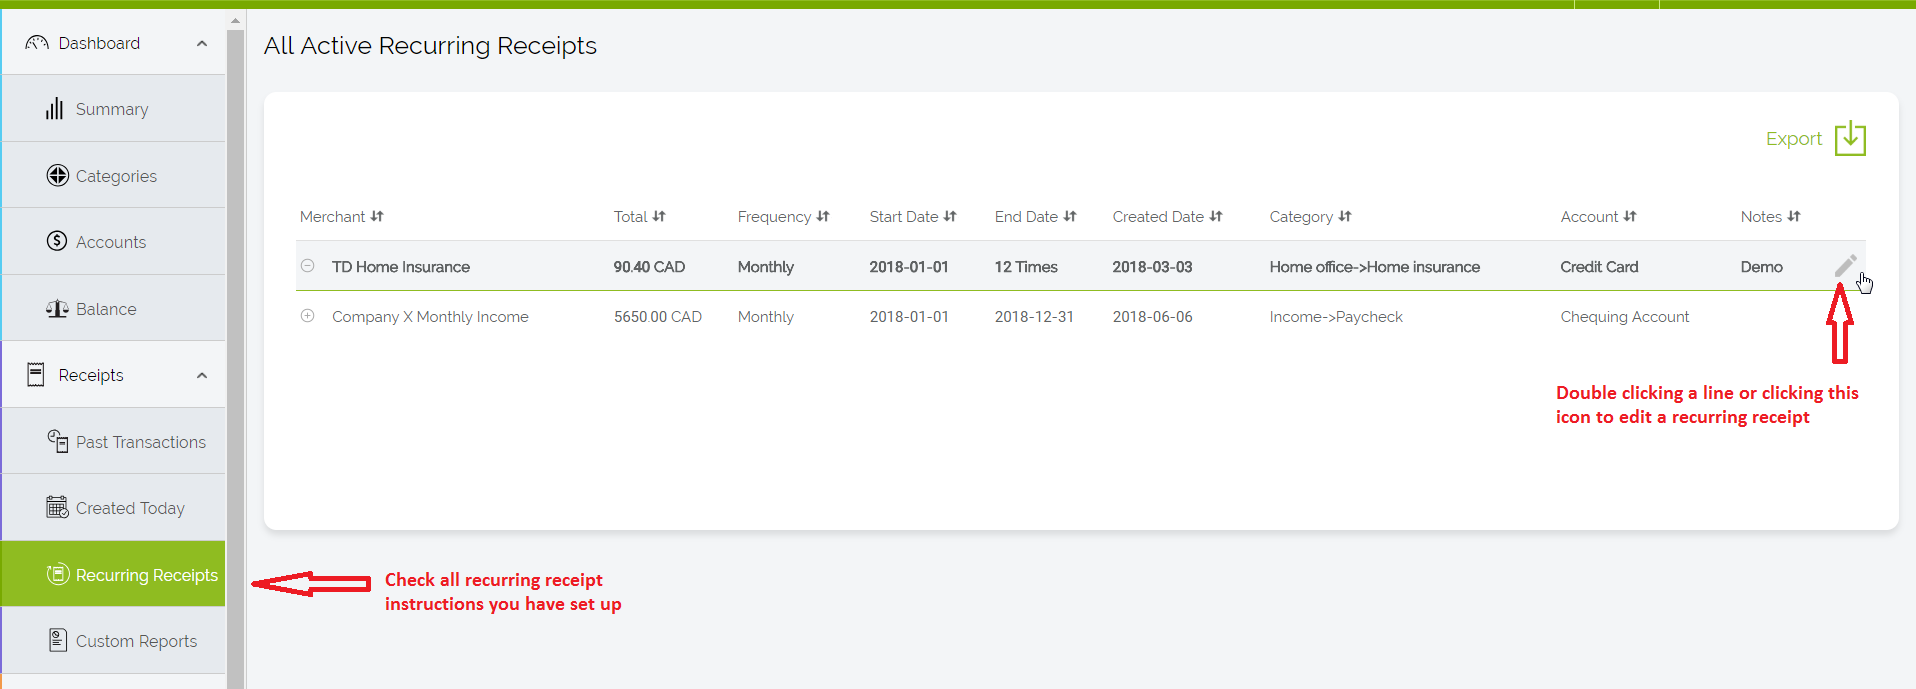 how to create a recurring receipt customer feedback for foreceipt